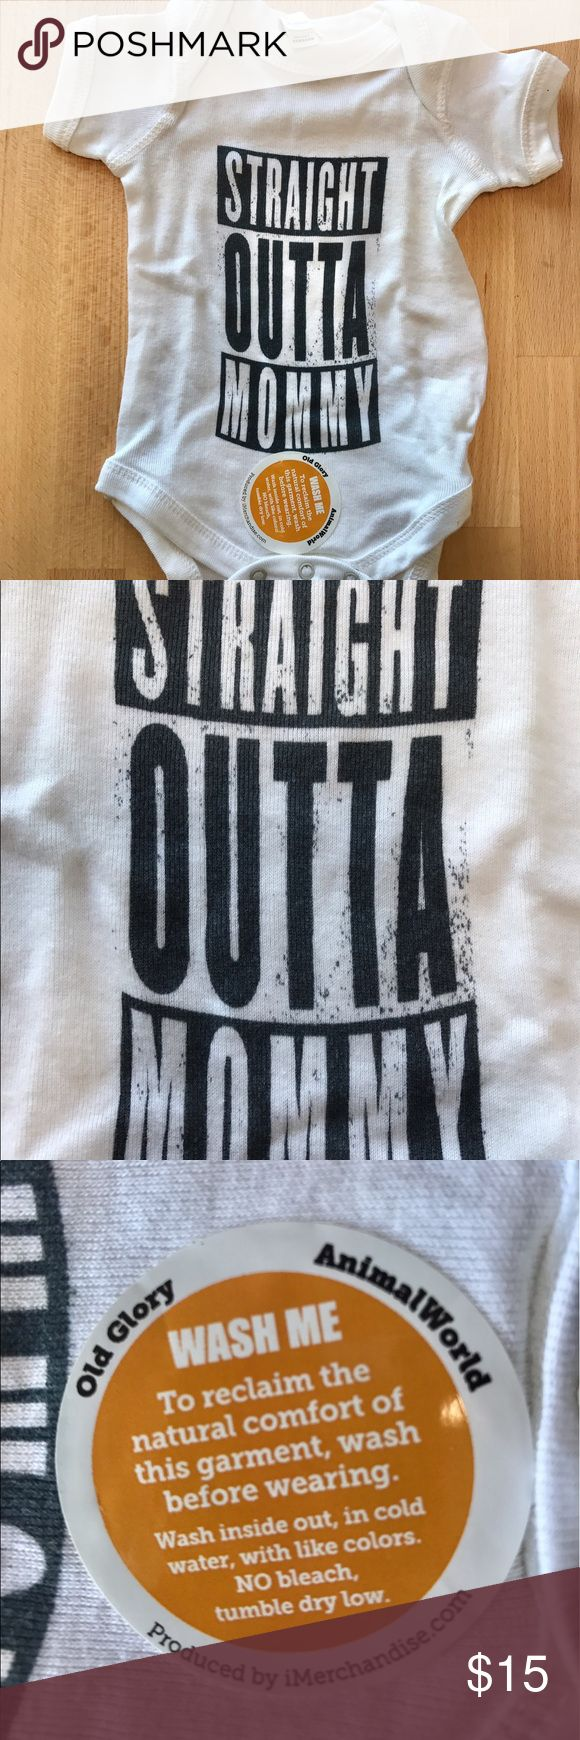 Straight Outta Mommy Onesie Brand New Unisex Straight Outt Compton New Born size onsie One Pieces Bodysuits